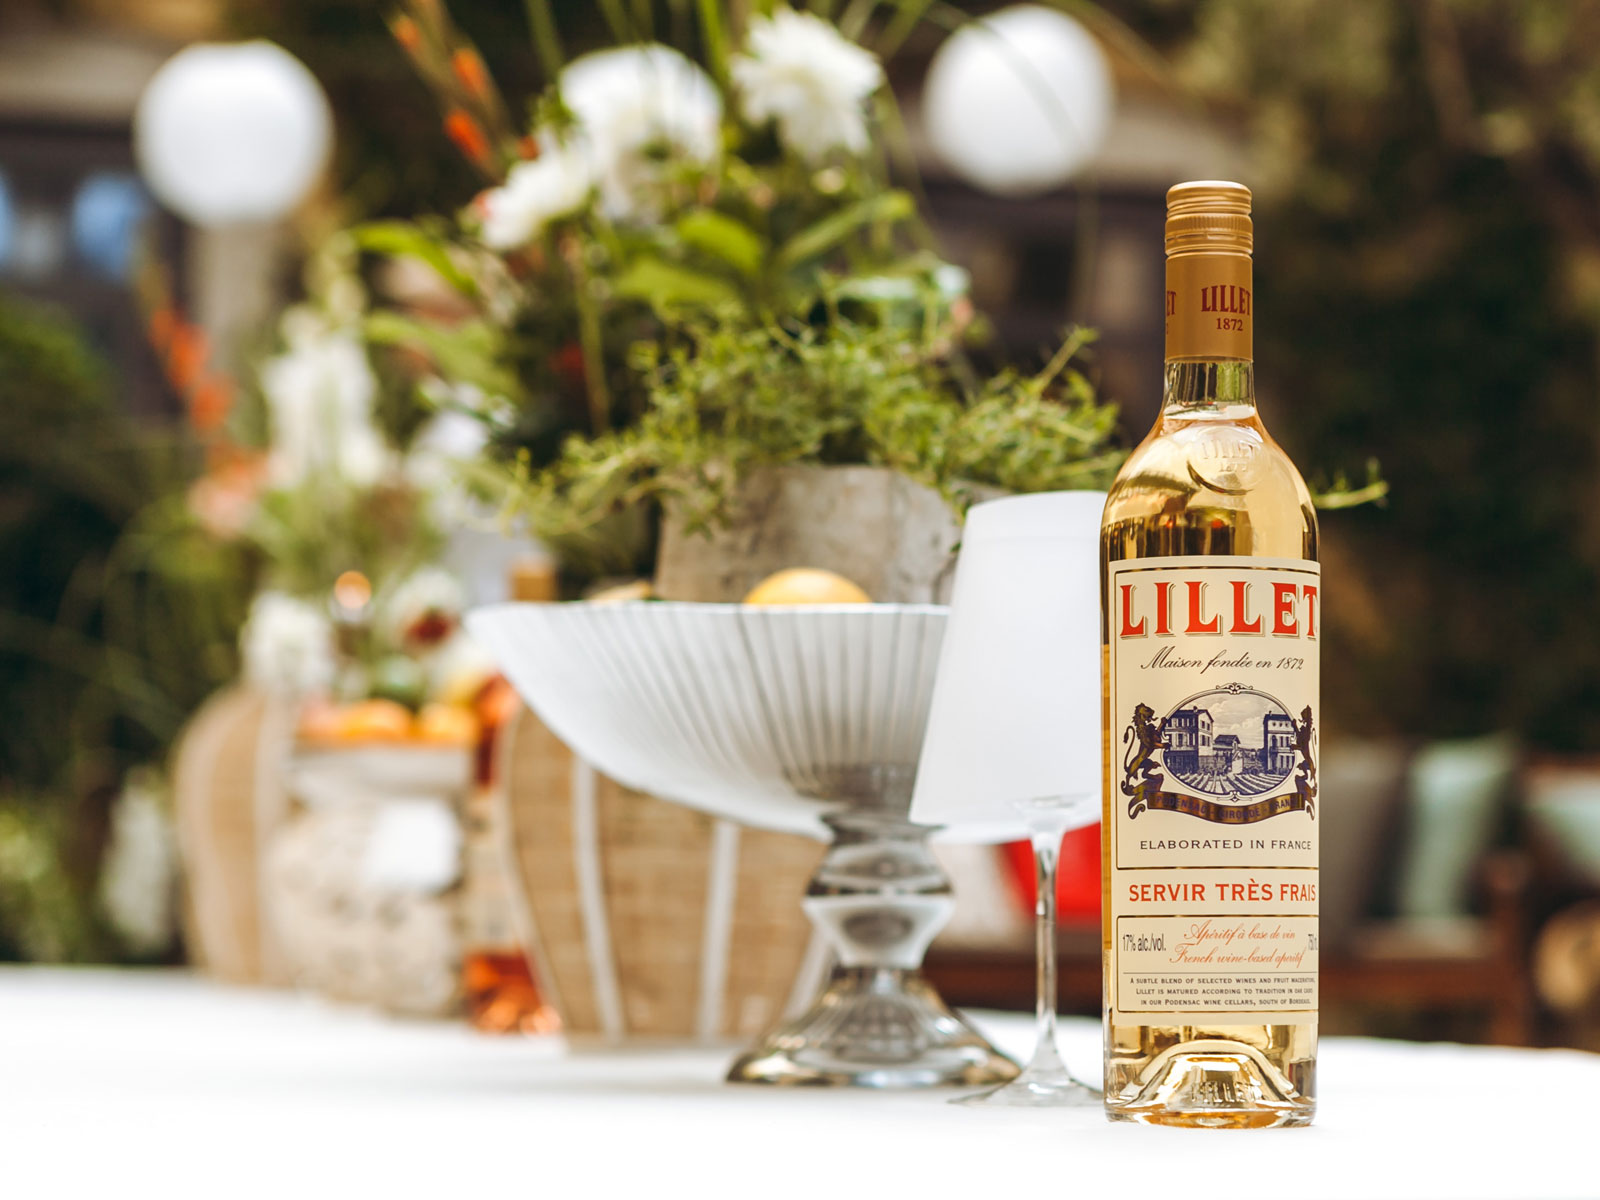 Summer's Not Over. Neither Is Lillet Season